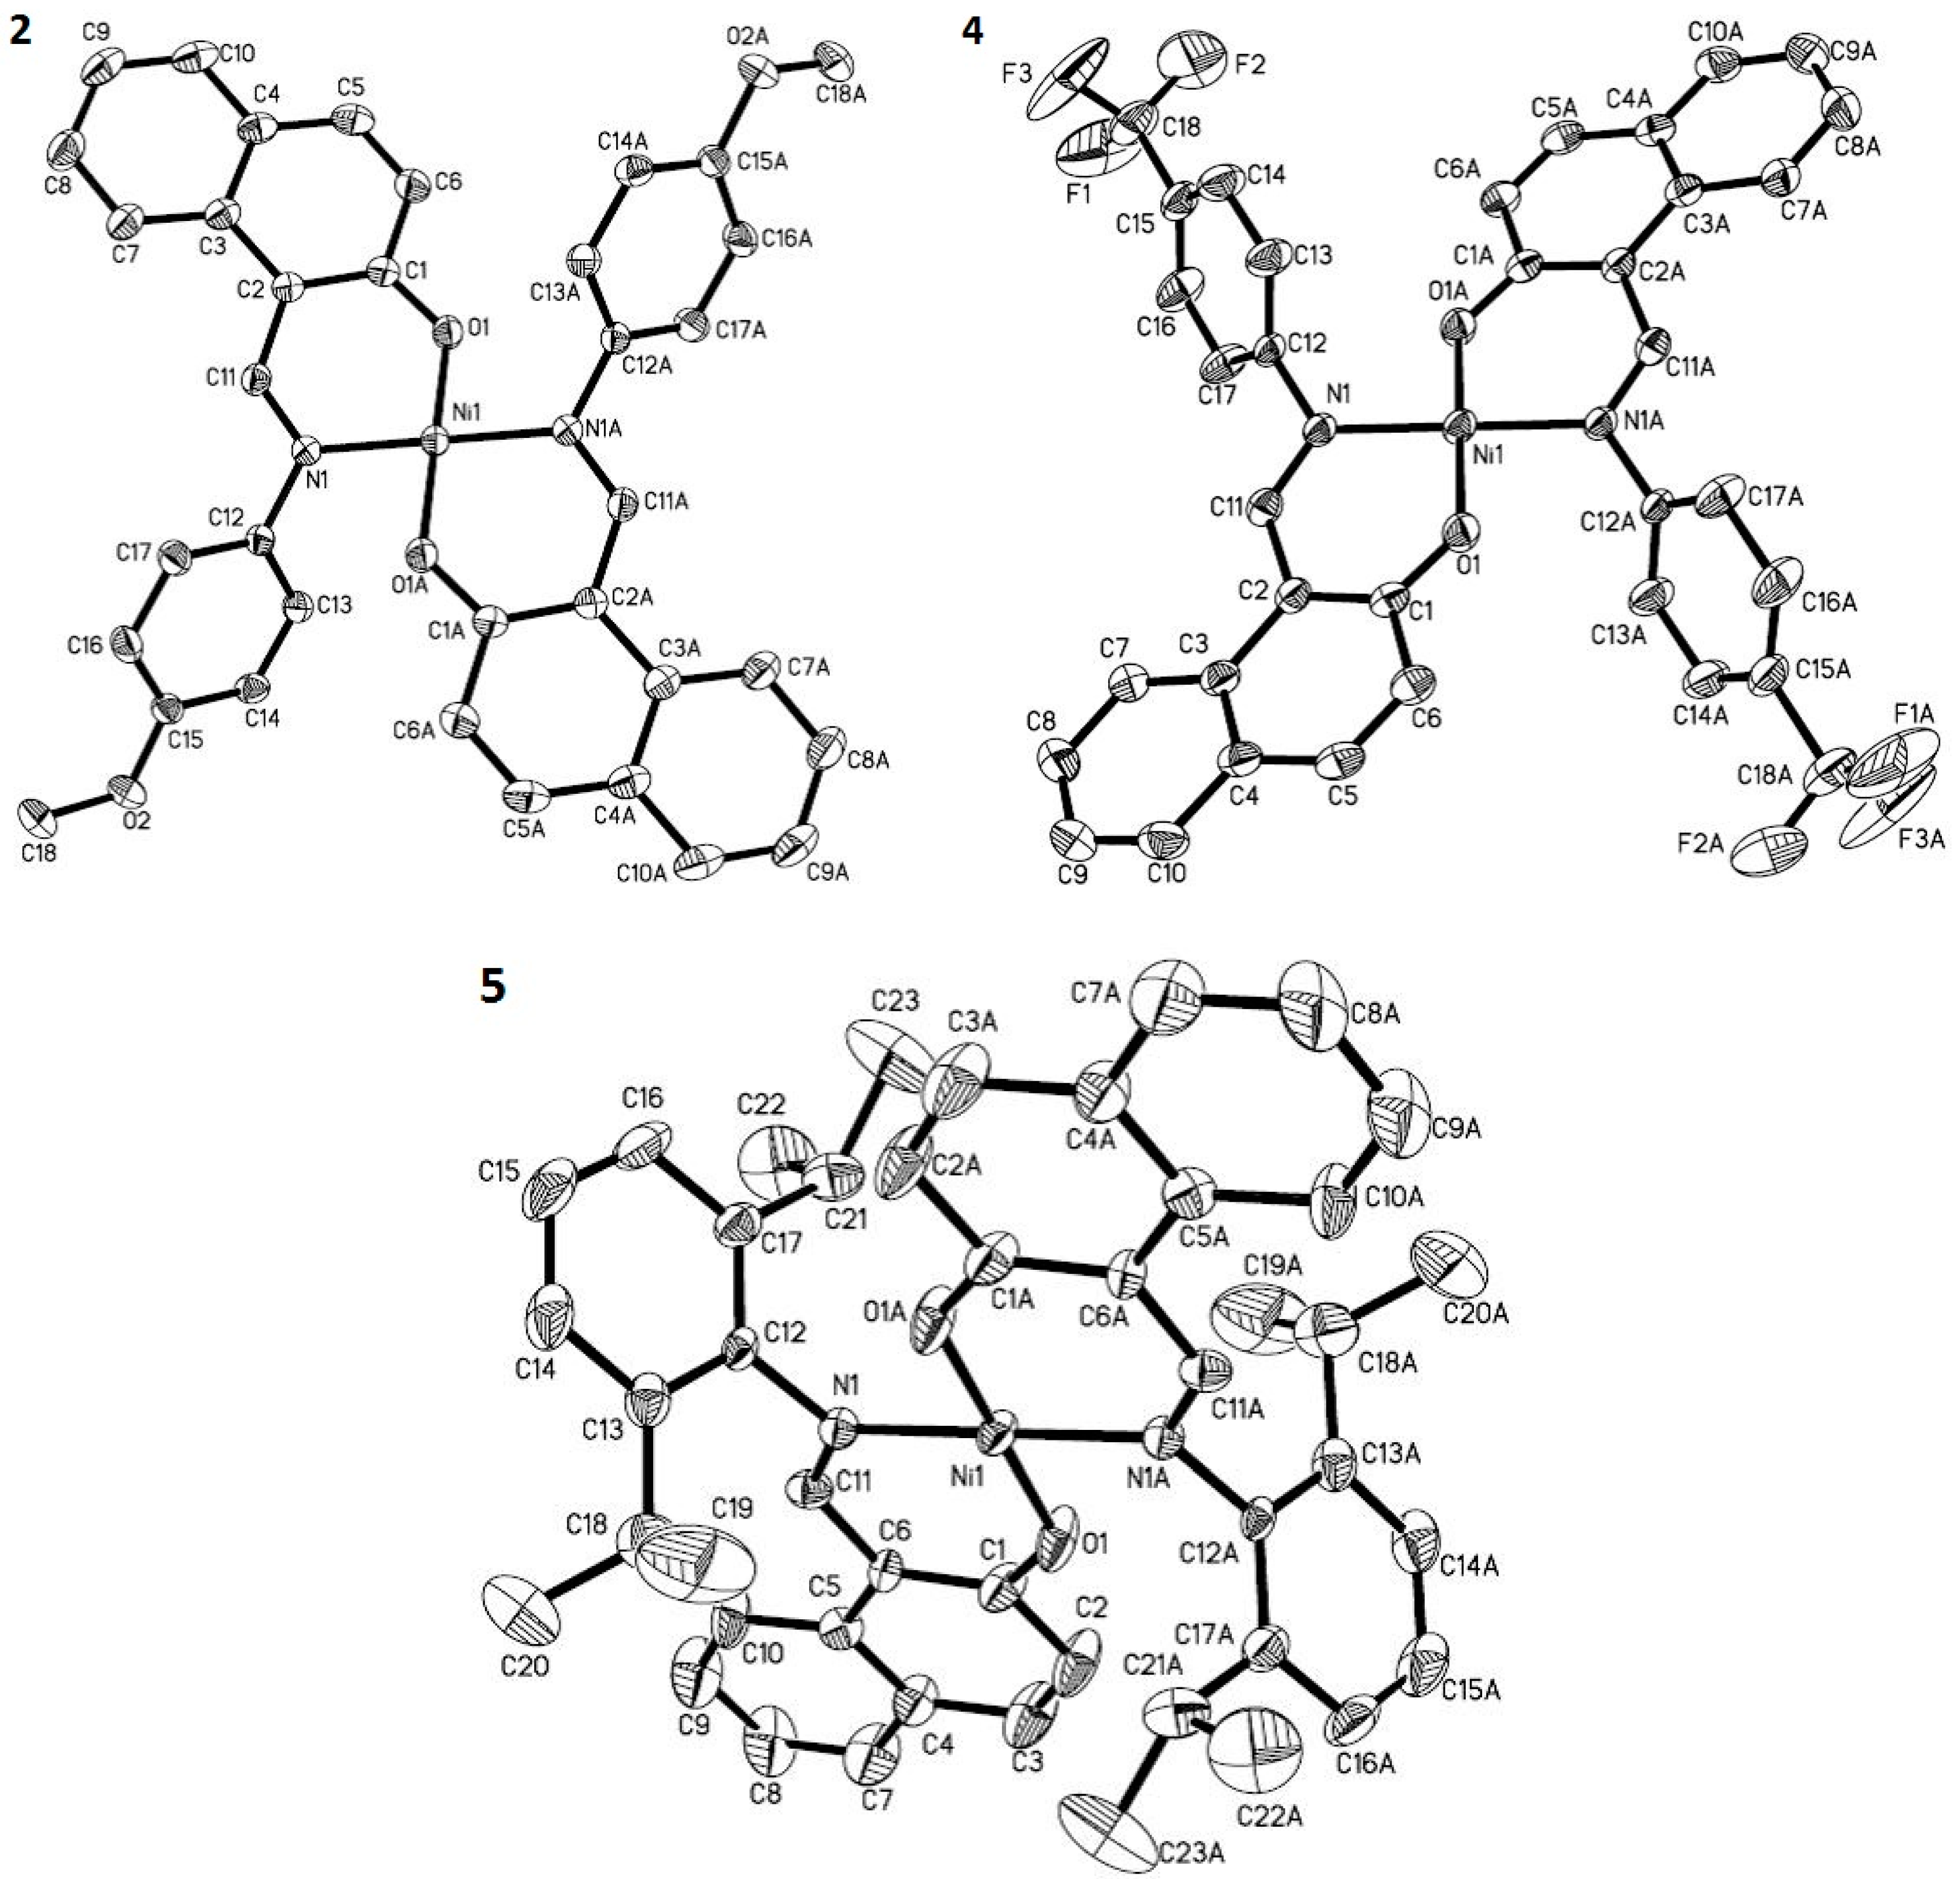 ivin olefin metathesis and metathesis polymerization Since the discovery of olefin metathesis in the mid-1950s, there has been great   keywords: ring-opening metathesis polymerization (romp) living  polymerization review olefin  reports by osborn, rooney, ivin, feast, and  others [25.